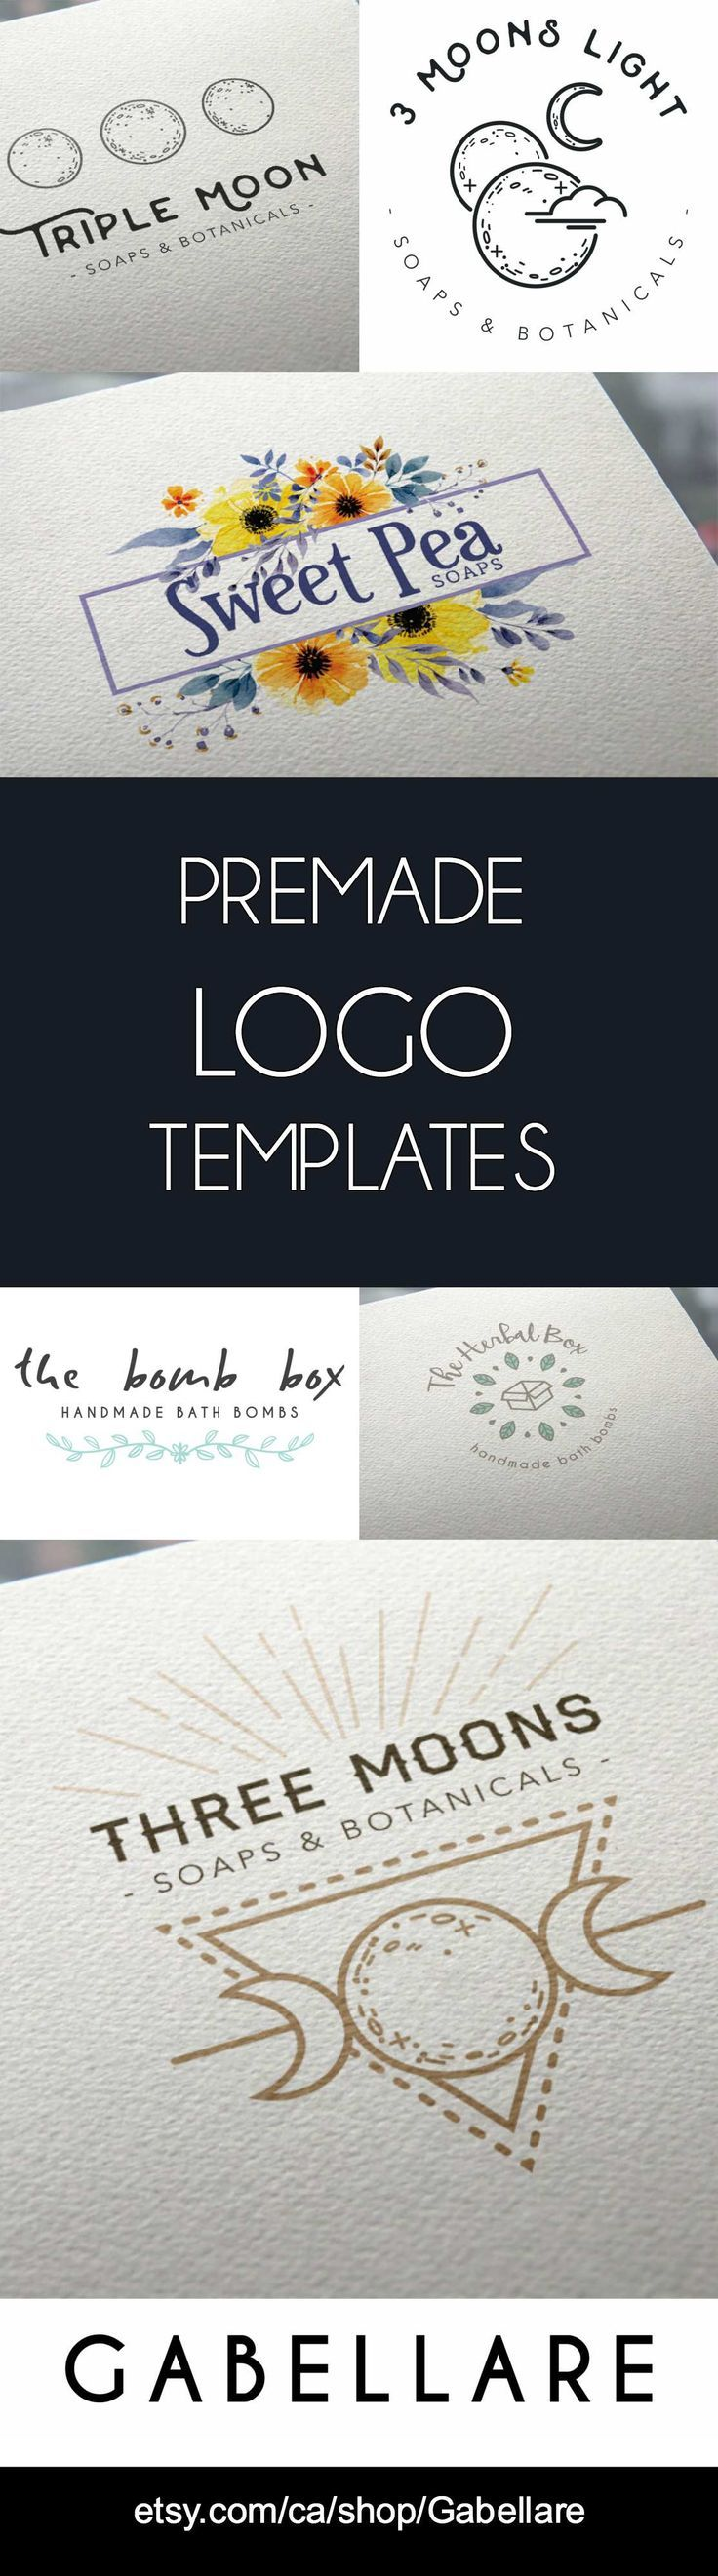 Gabellare | Improve your business reach with a unique logo. If you just started your own small business, blog or direct sales company, there's only few ways to stand out. Present yourself with the professional looking branding, your clients are hoping for, with an eye catching custom logo design, to give your business the exceptional style you need.